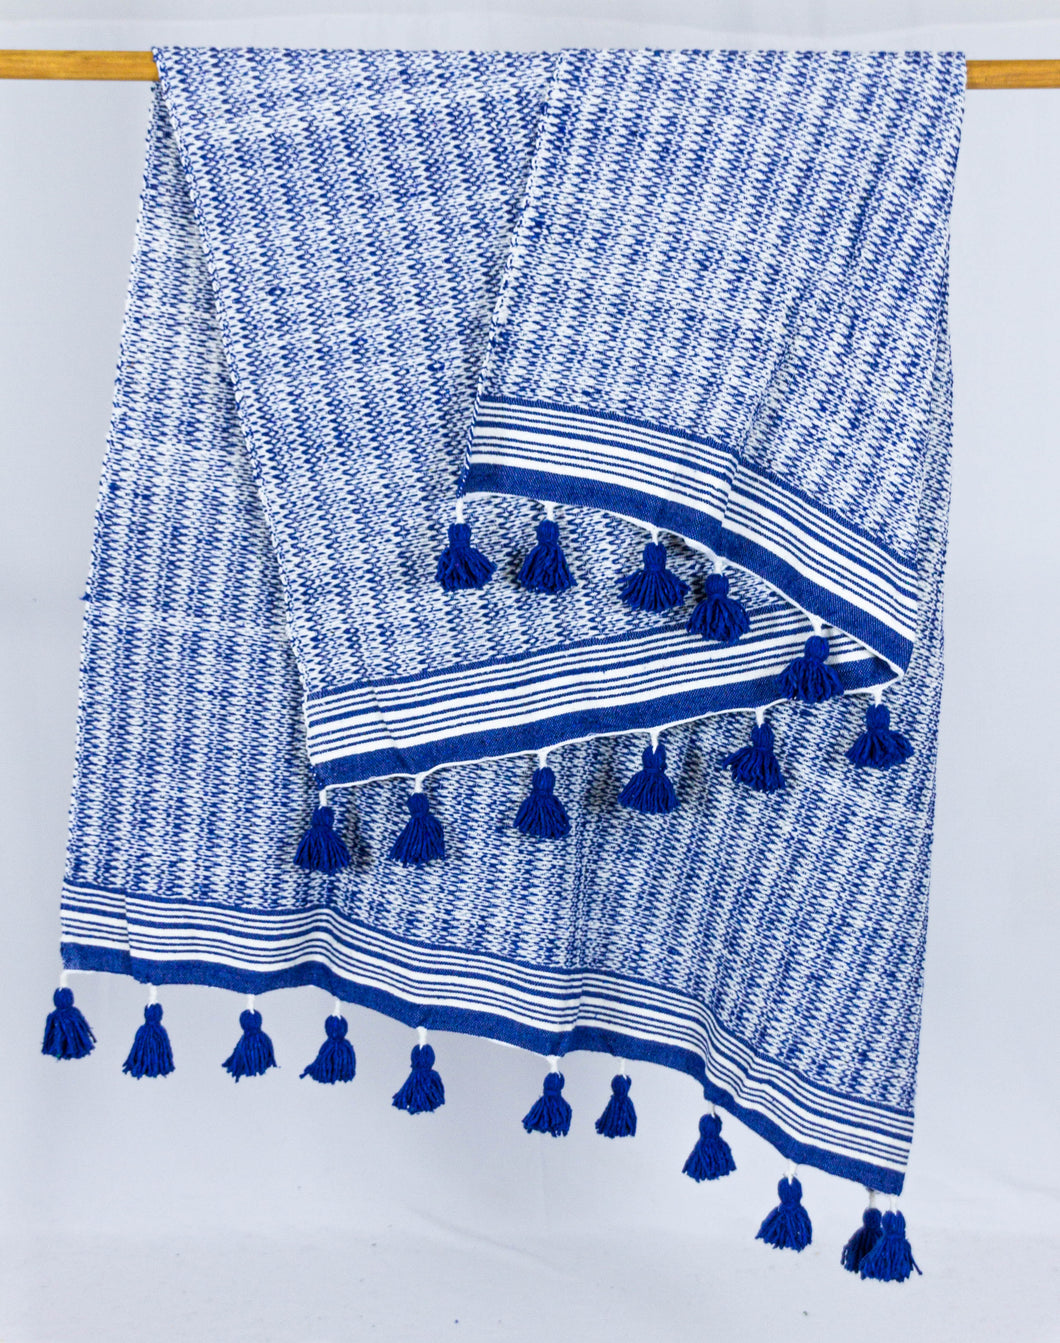 Wool Design Blanket: Blue and White with Blue Pom Poms